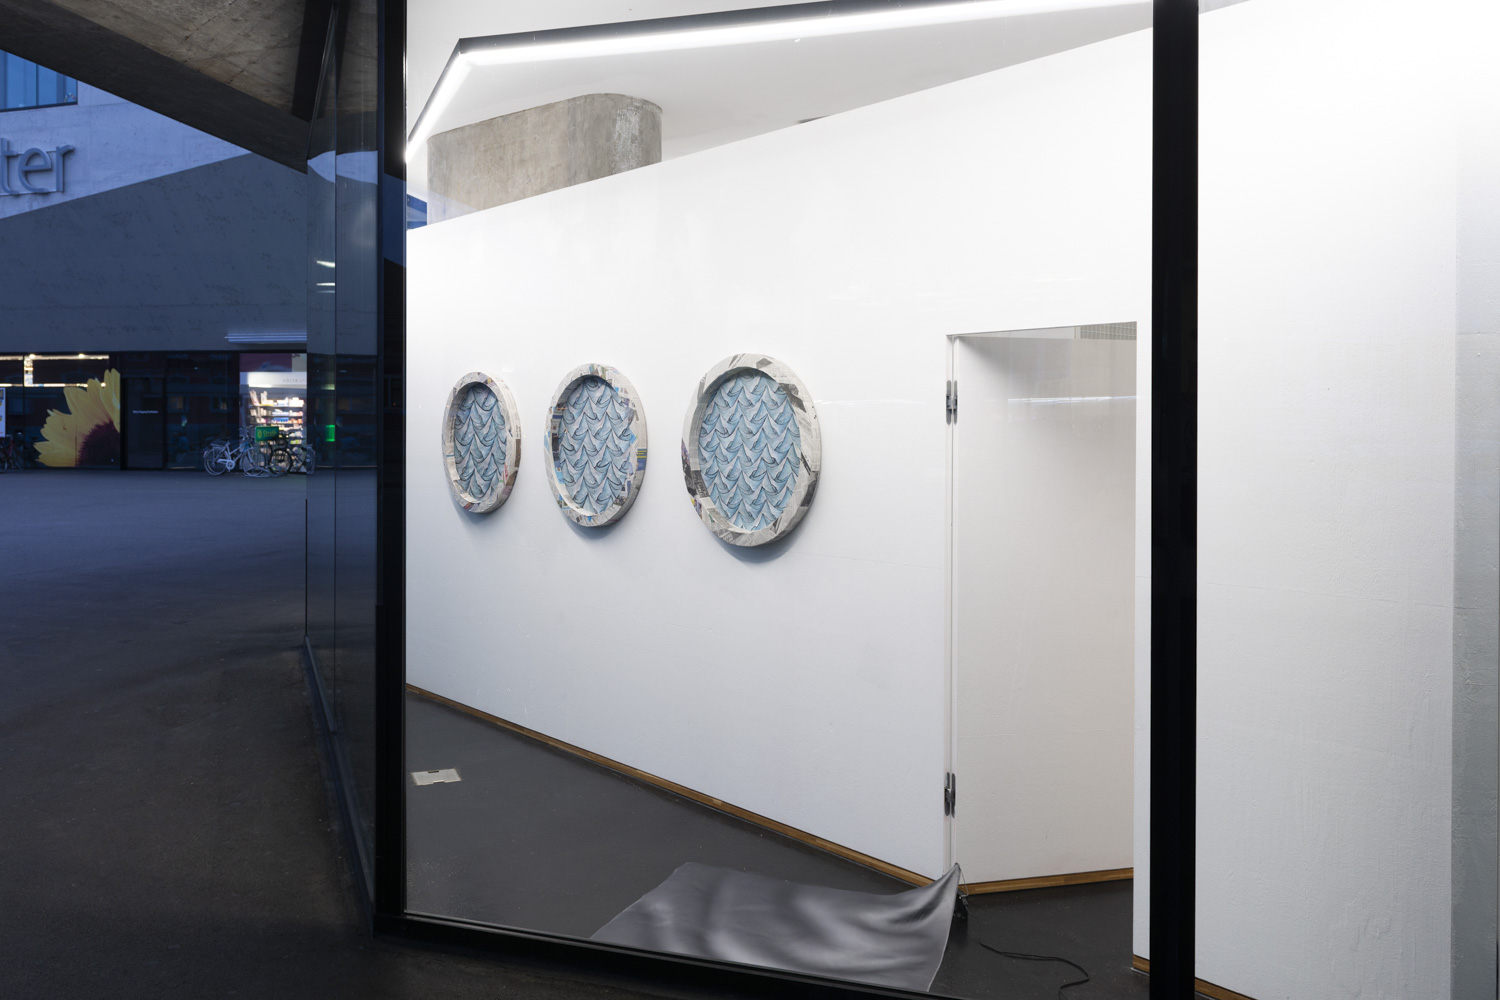 Sam Porritt, A Certain Change, Installation View. 2018. VITRINE, Basel. Photographer: Nici Jost.